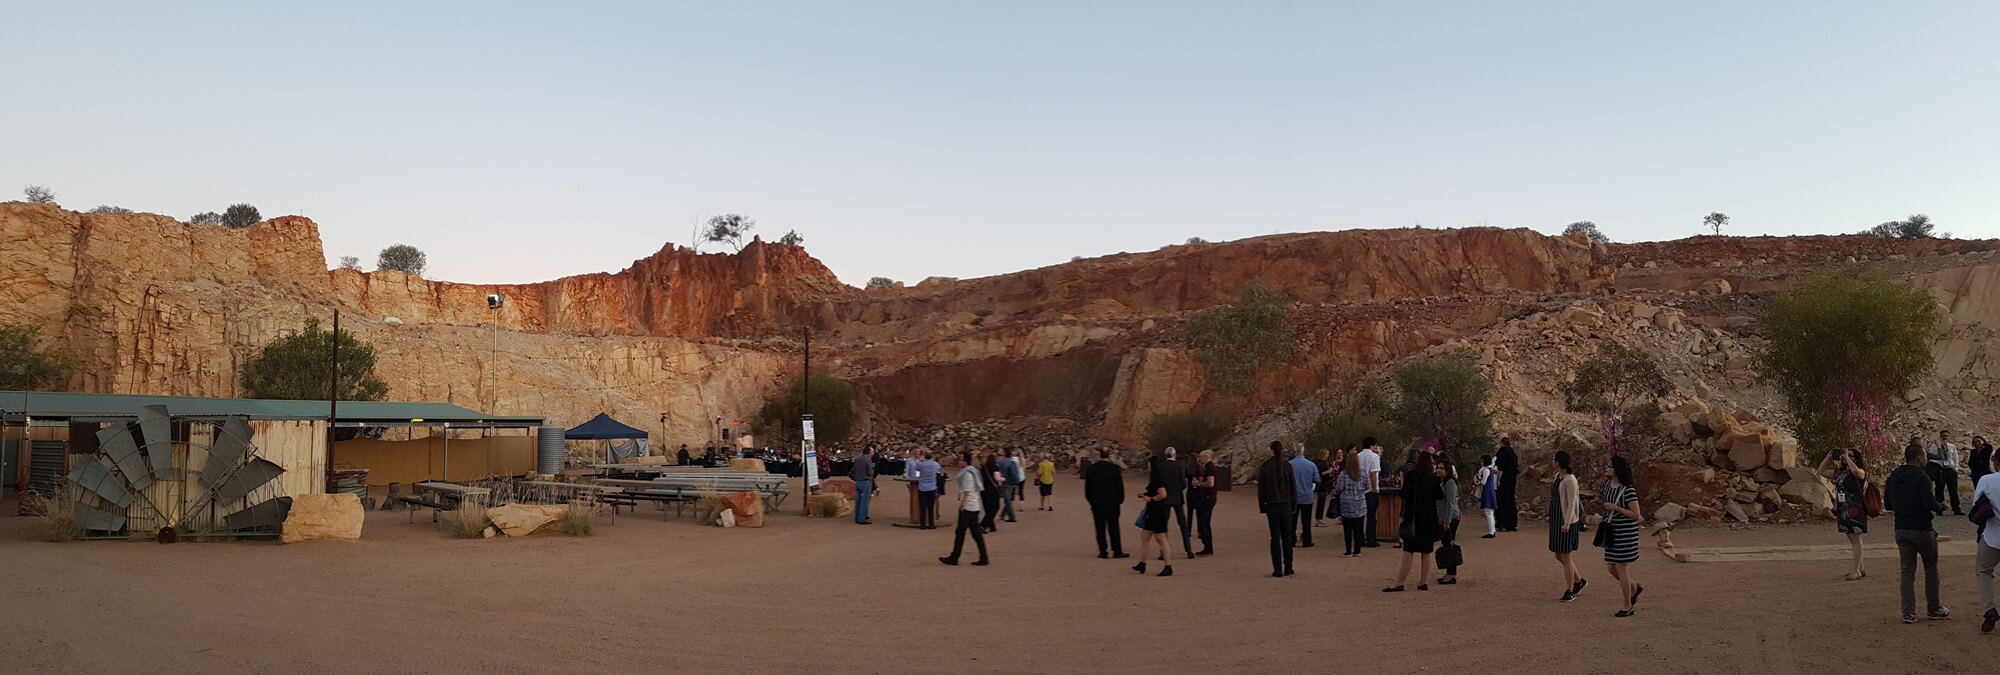 Photo of the scenery at the old quarry in Alice Springs for the Forum dinner